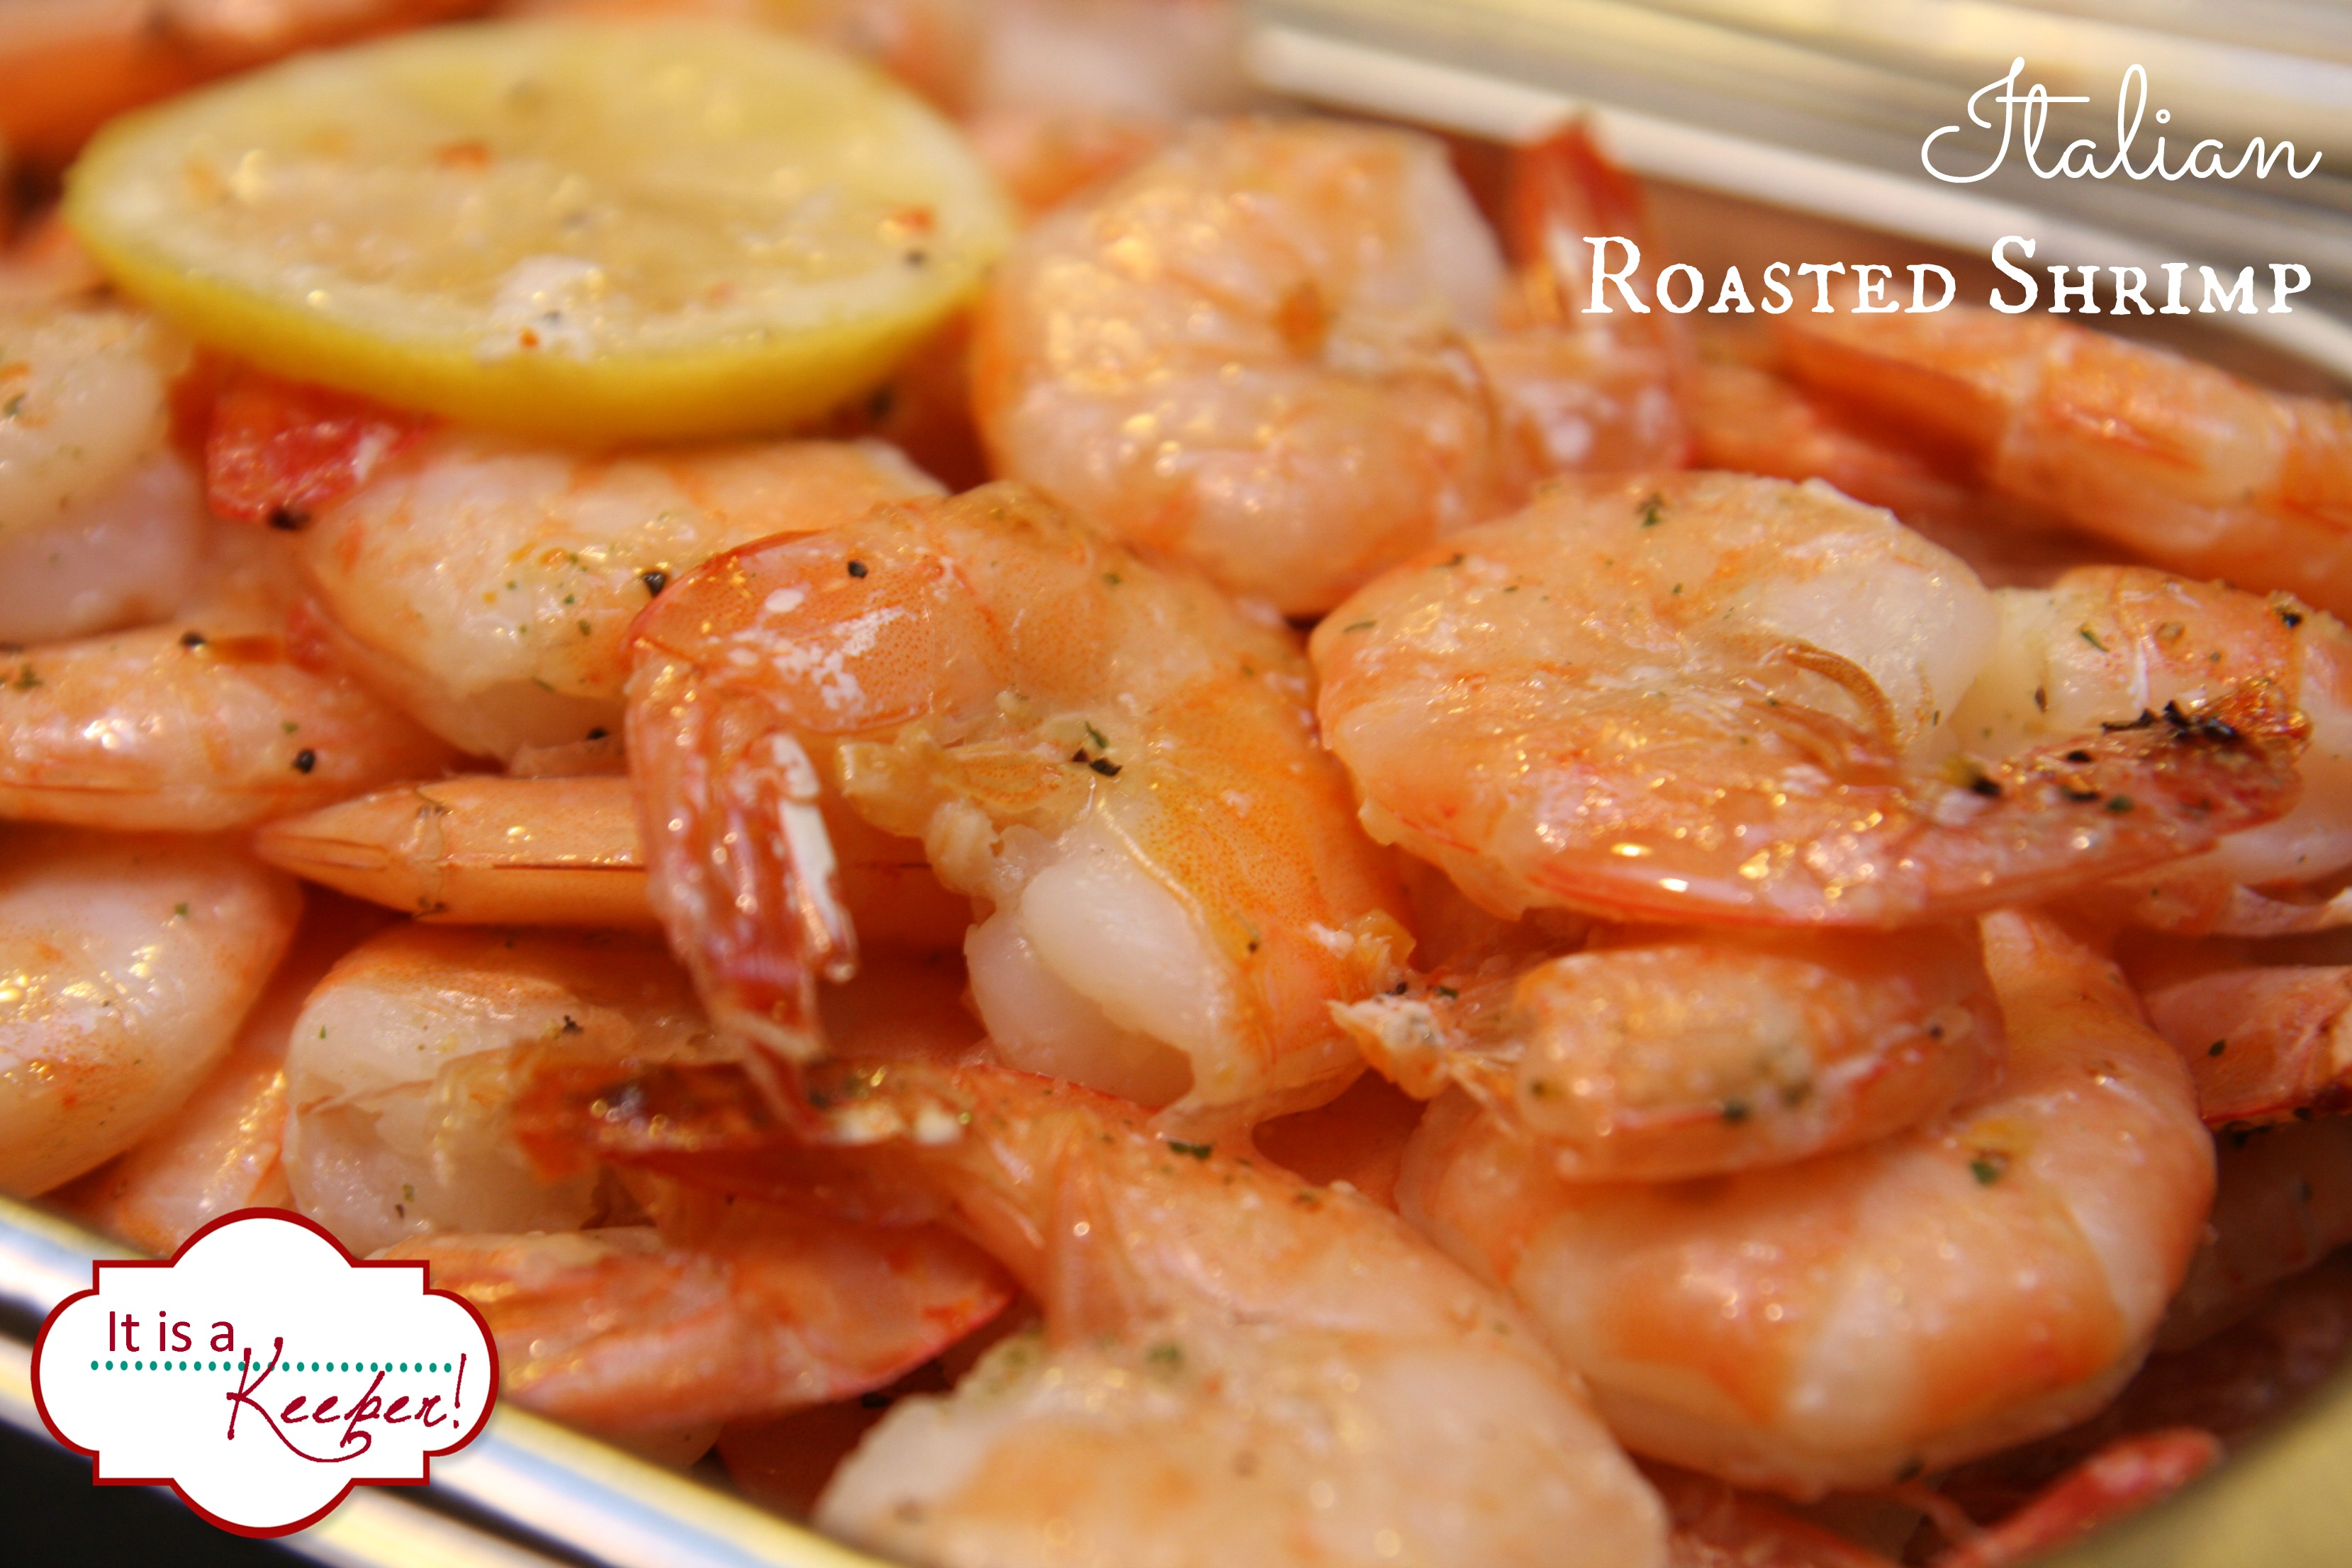 Roasted Italian Shrimp: An Easy Shrimp Recipe